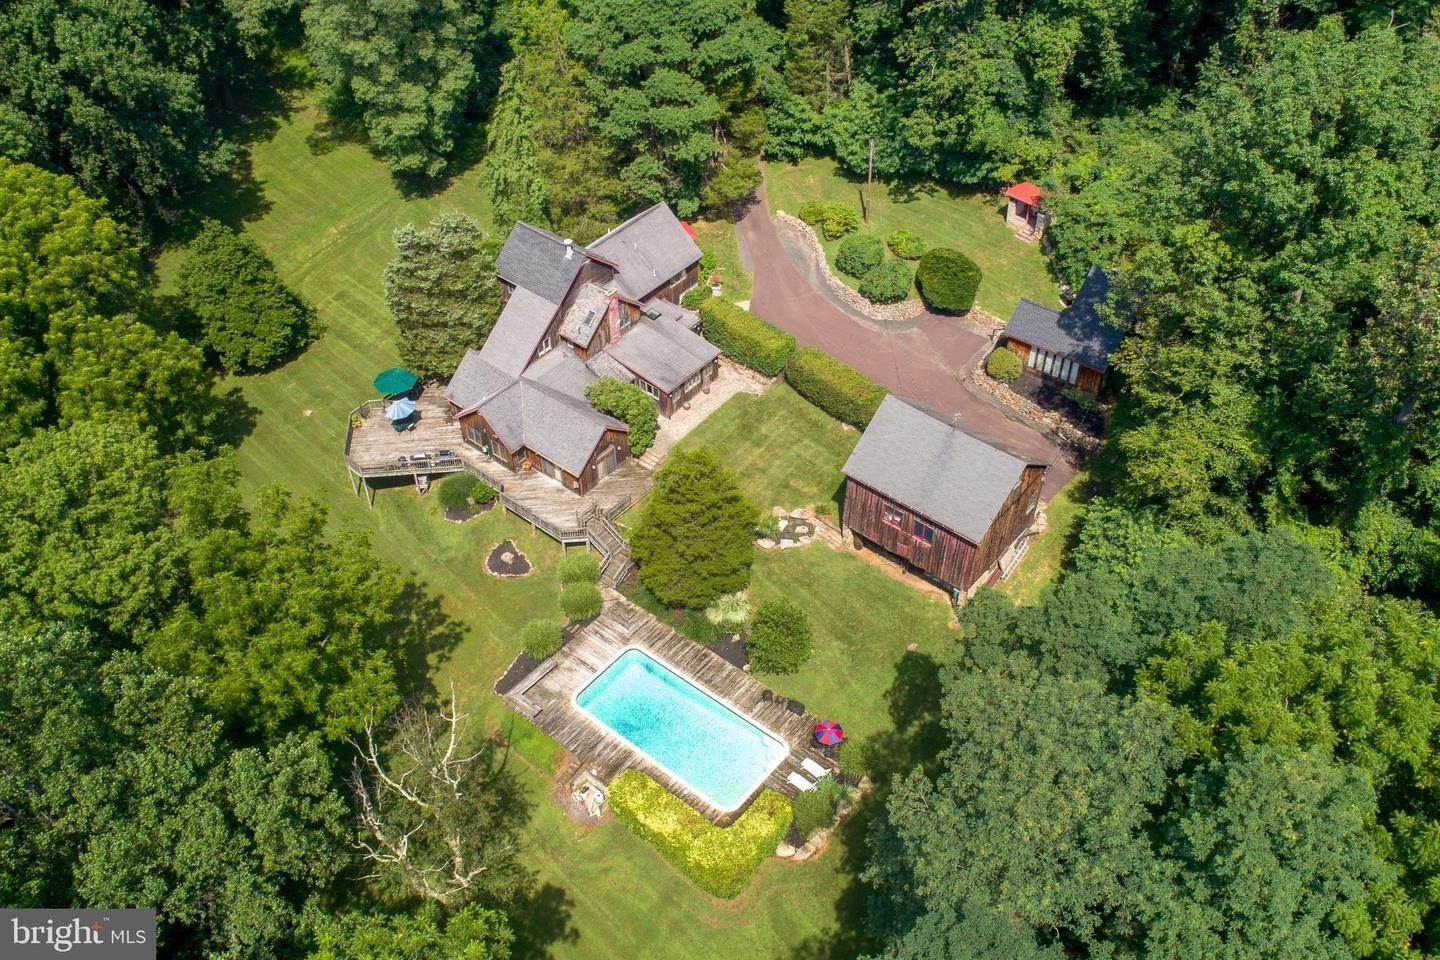 Detached House for Sale at 405 COUNTY LINE Road Riegelsville, Pennsylvania 18077 United States